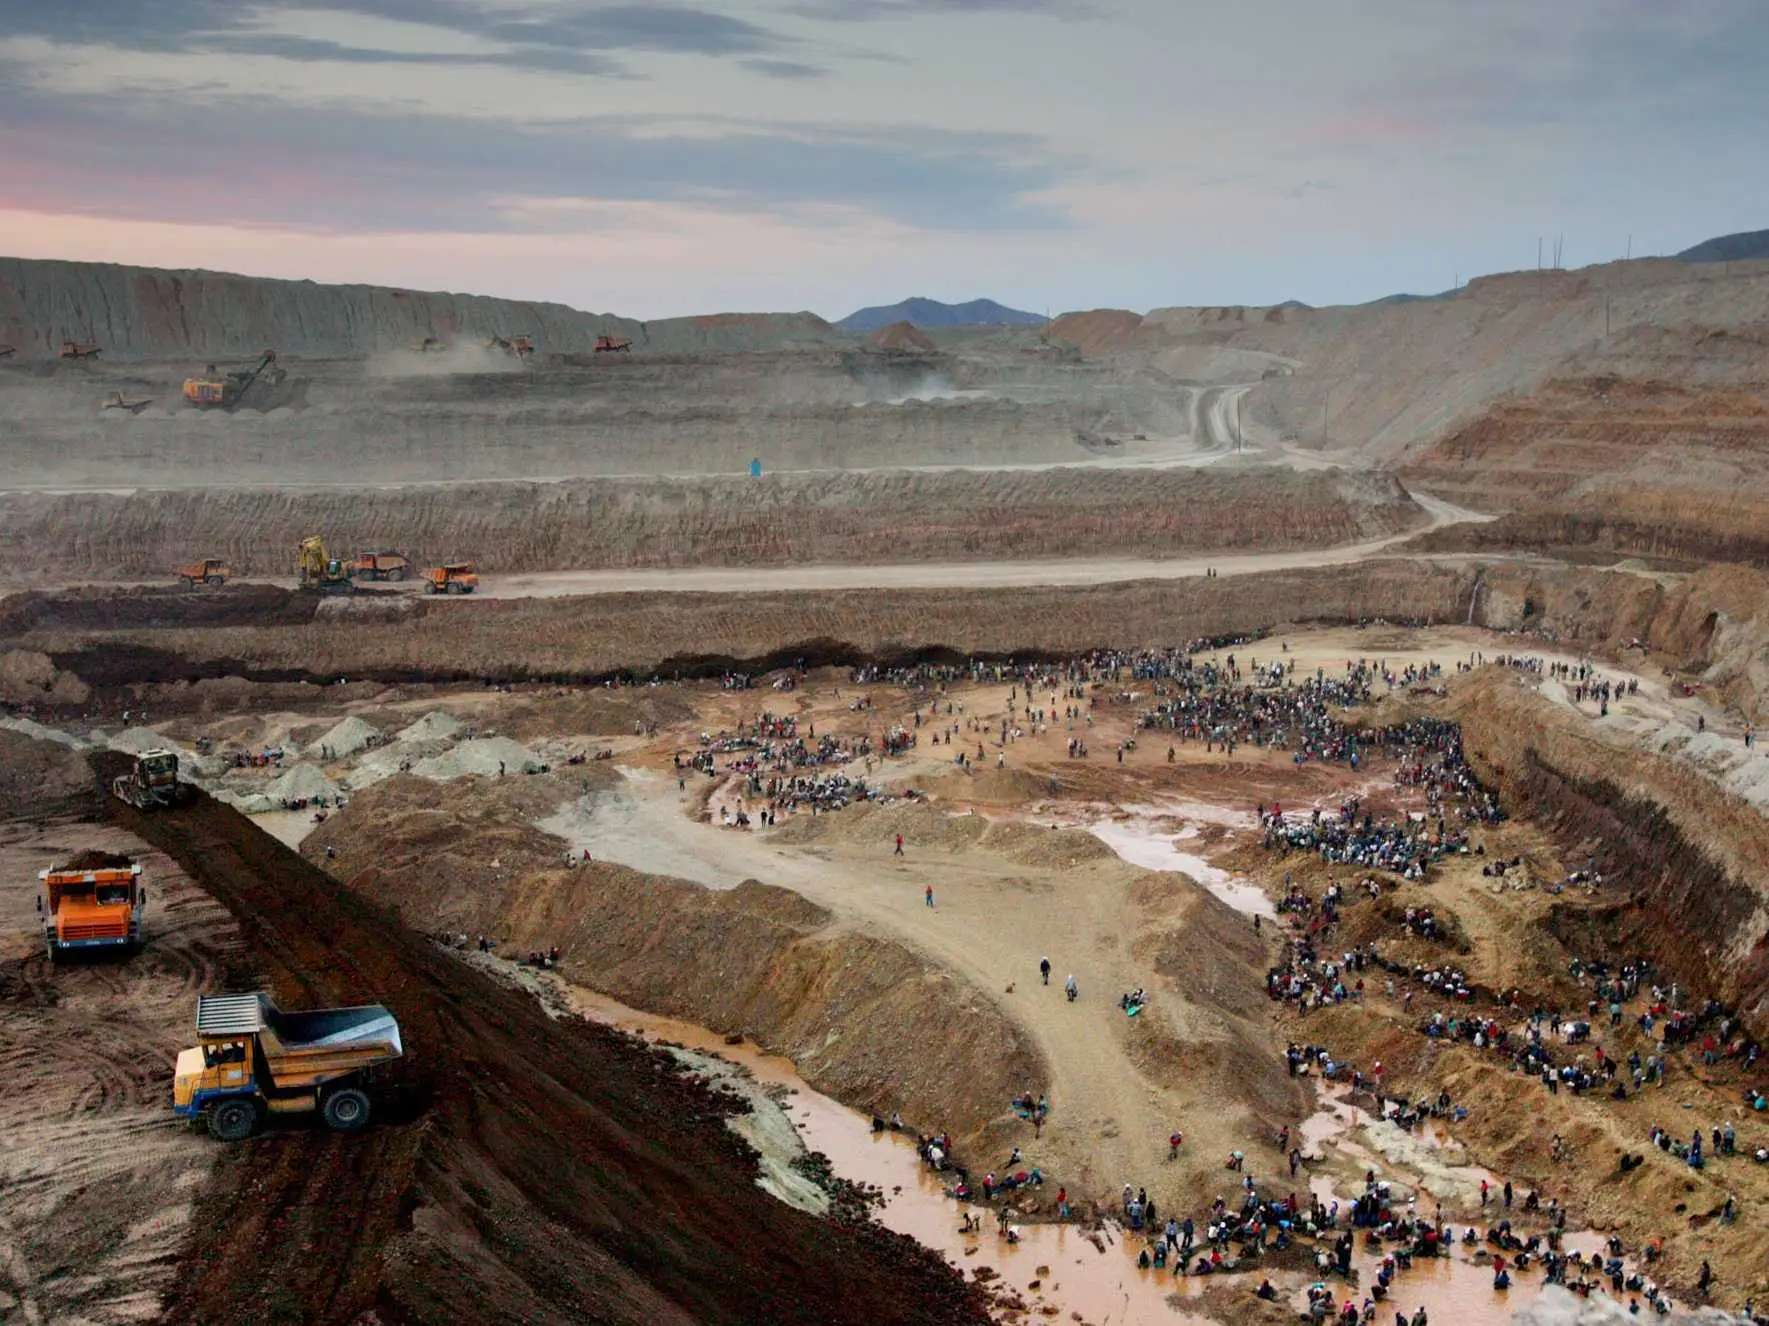 Mongolia is experiencing what is arguably the biggest gold rush of the 21st century.